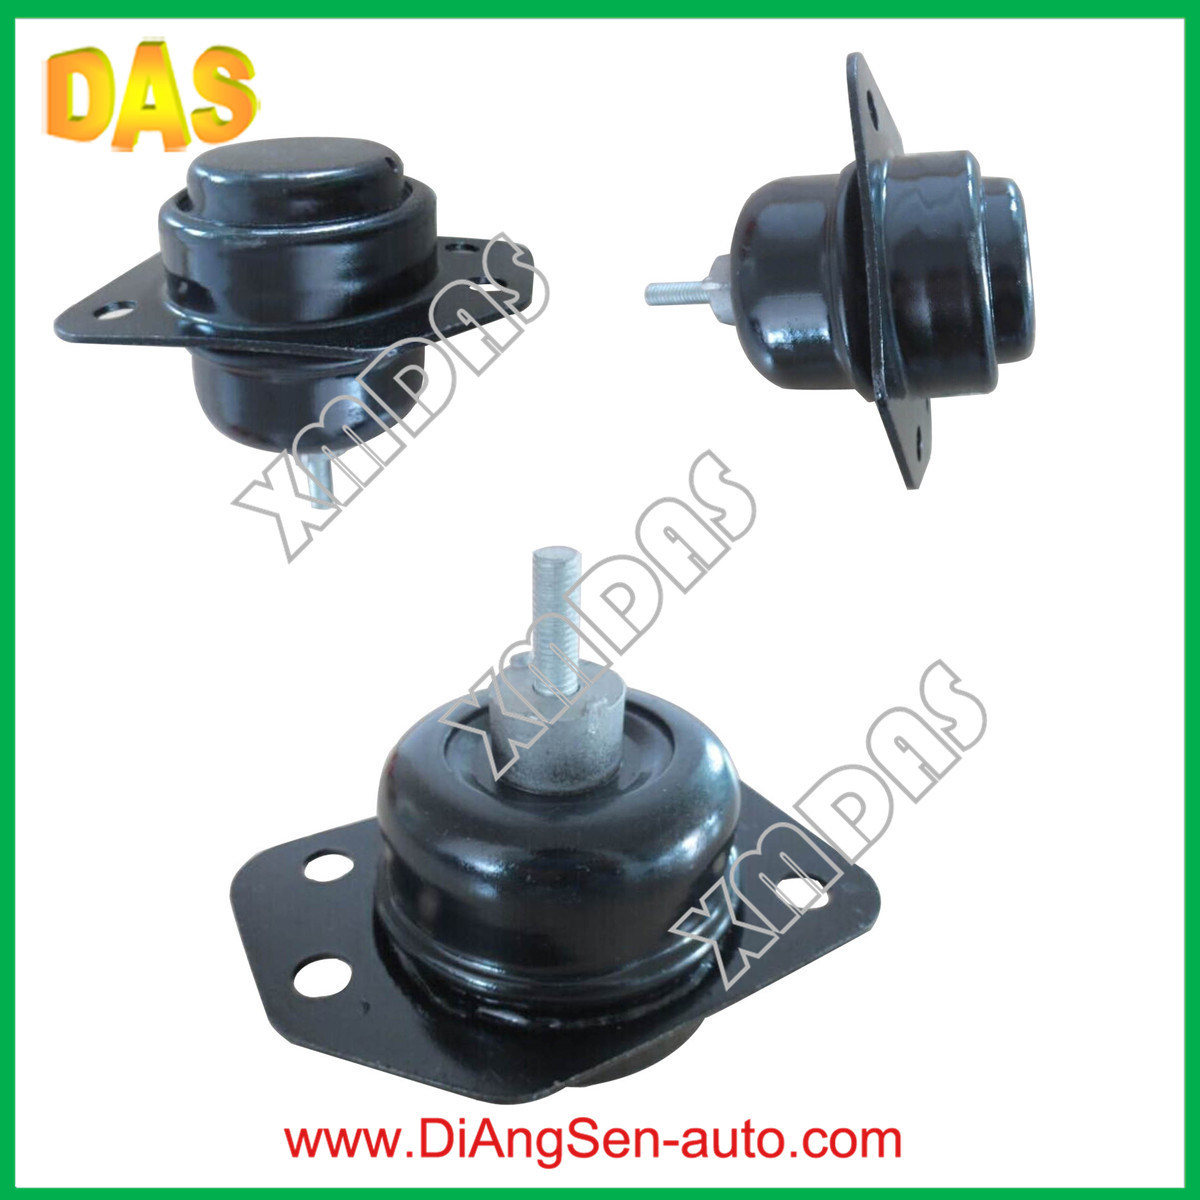 Rubber Engine and Transmission Mount for Chevrolet Captiva (25959114)